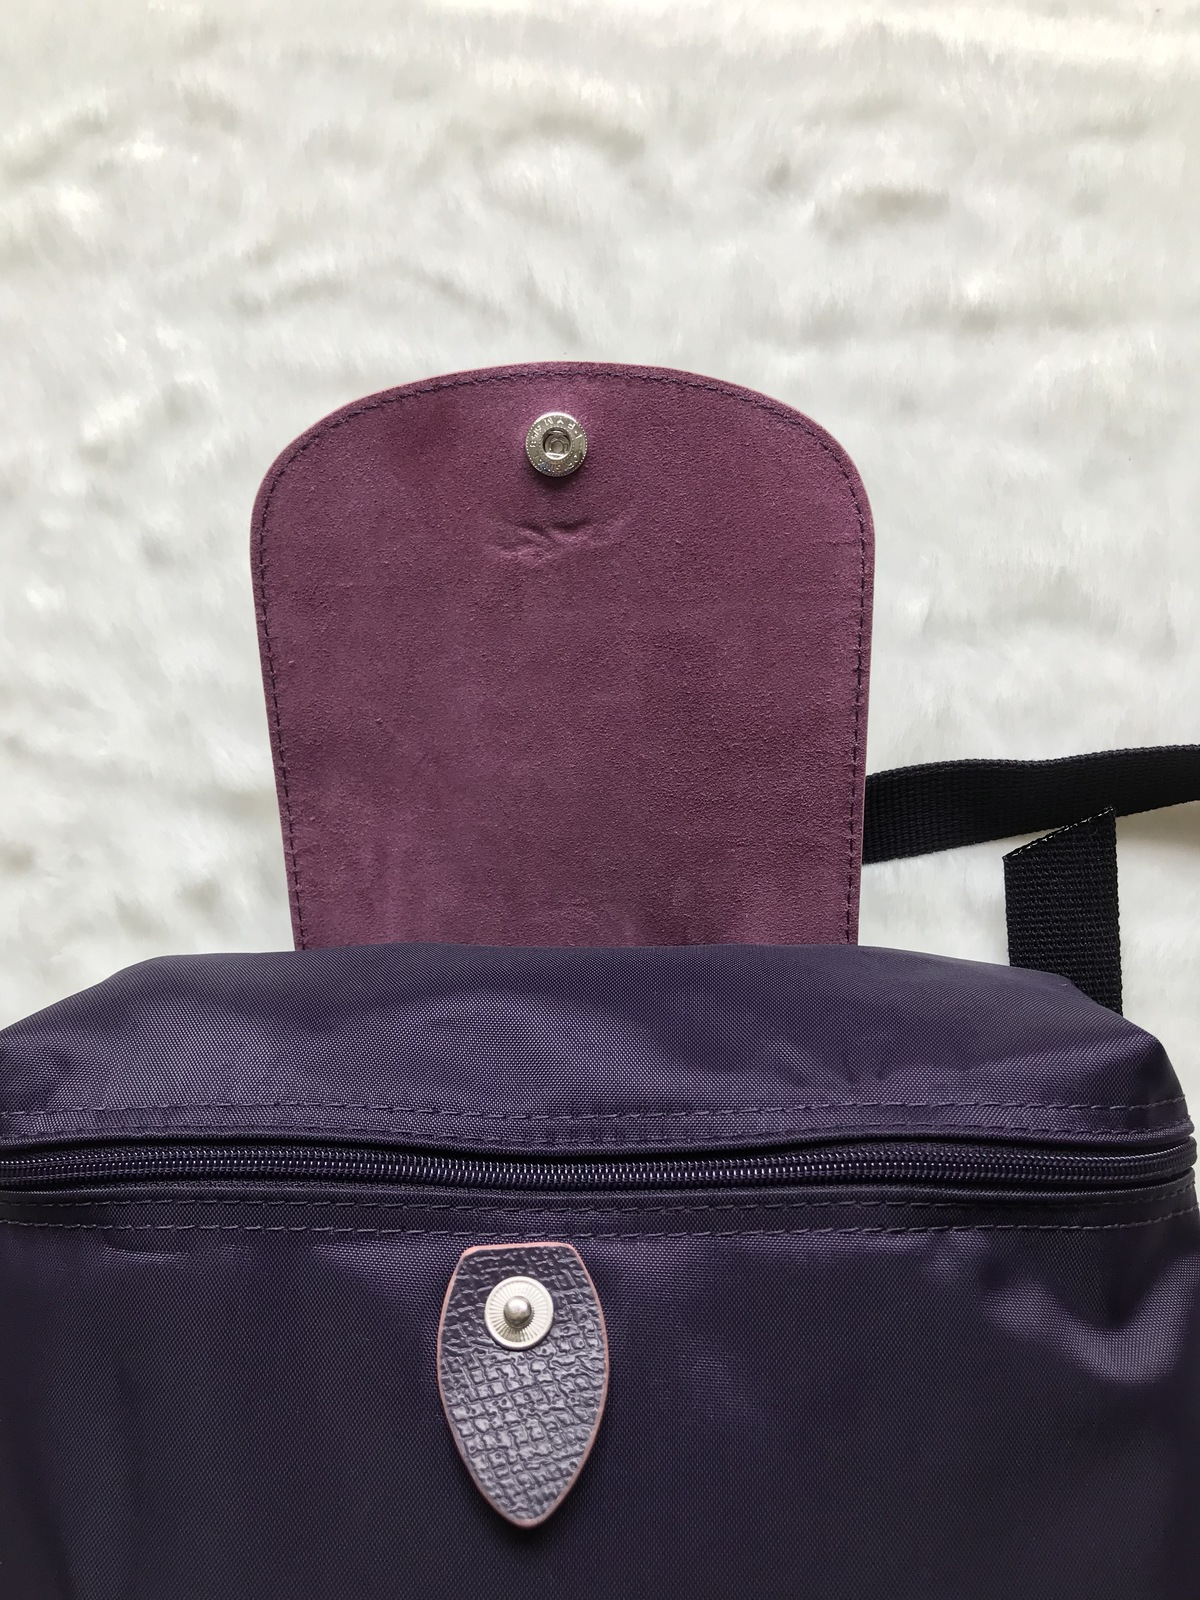 5e4208a632 France Md Longchamp Le Pliage Club Collection Horse Embroidery Backpack  Bilberry